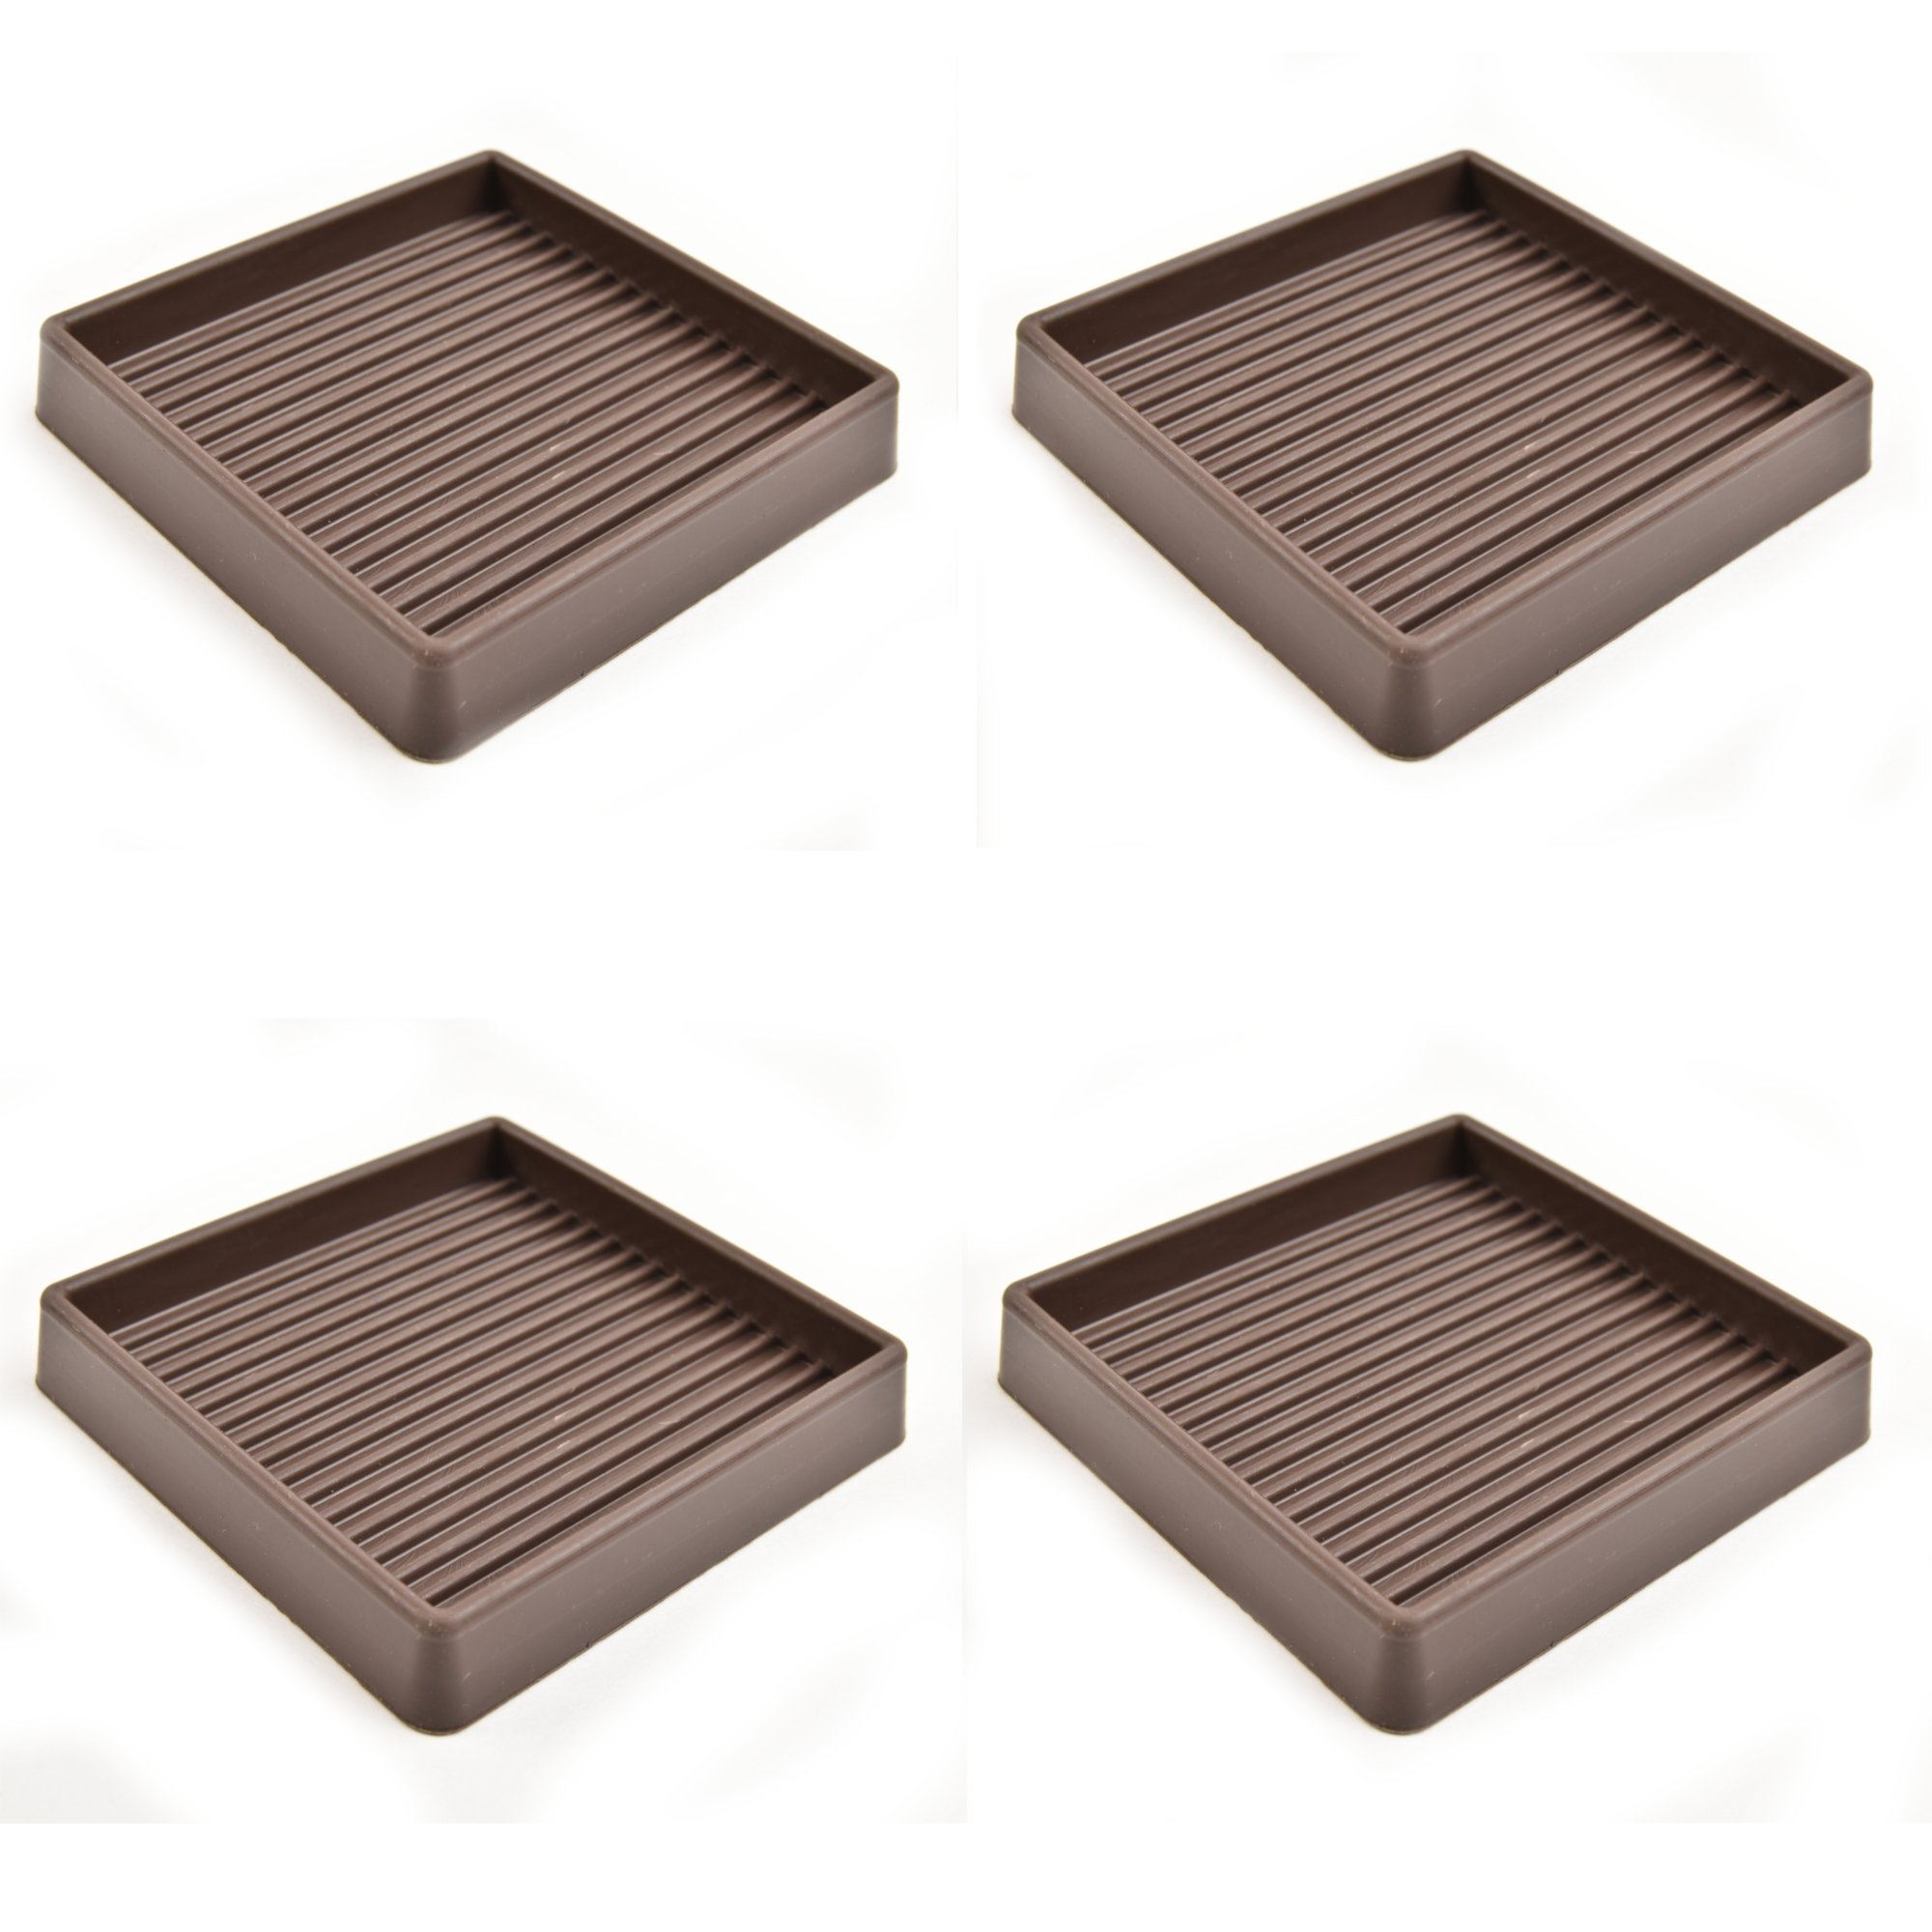 Set of 4 -Caster cups Rubber 3'' x 3'' - Brown by Combo Solutions (Image #2)